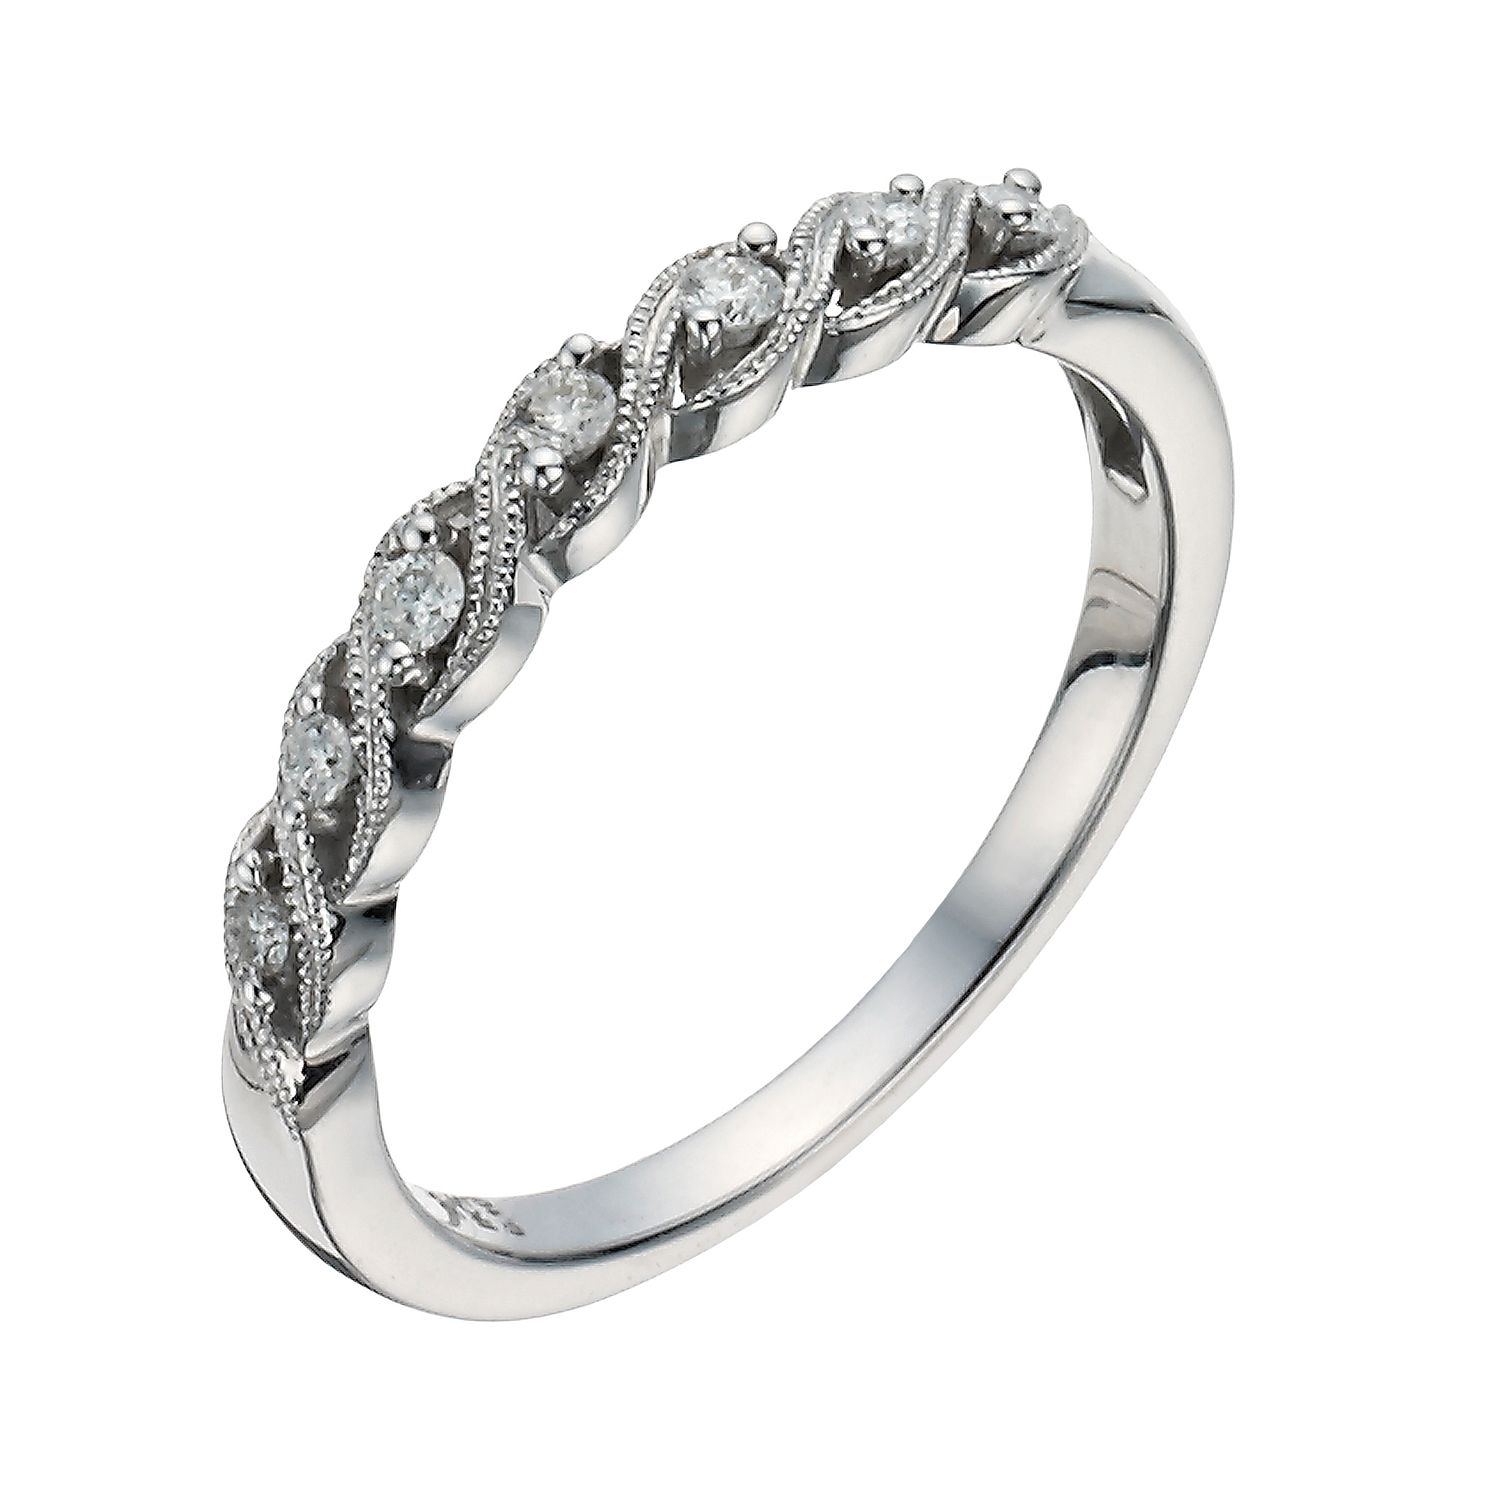 engagement jewellery rings freya look sapphire jewellers you detailed arsaeus made ring designs